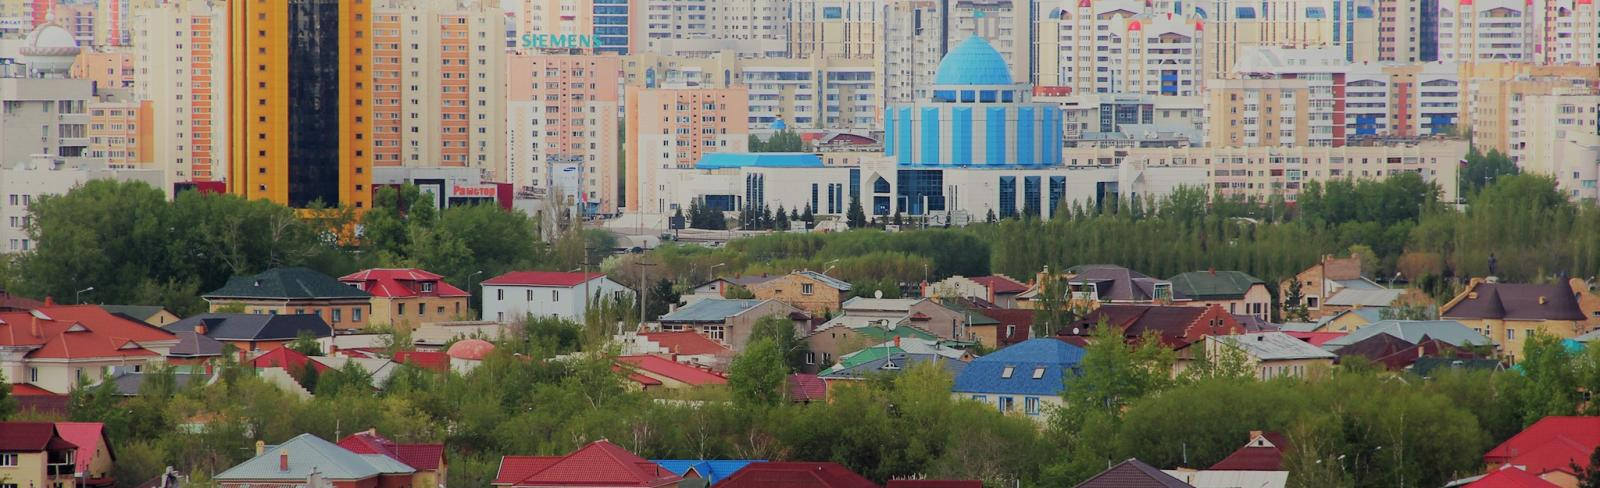 A view of homes outside of an urban area. Kazakhstan. Photo: Shynar Jetpissova / World Bank